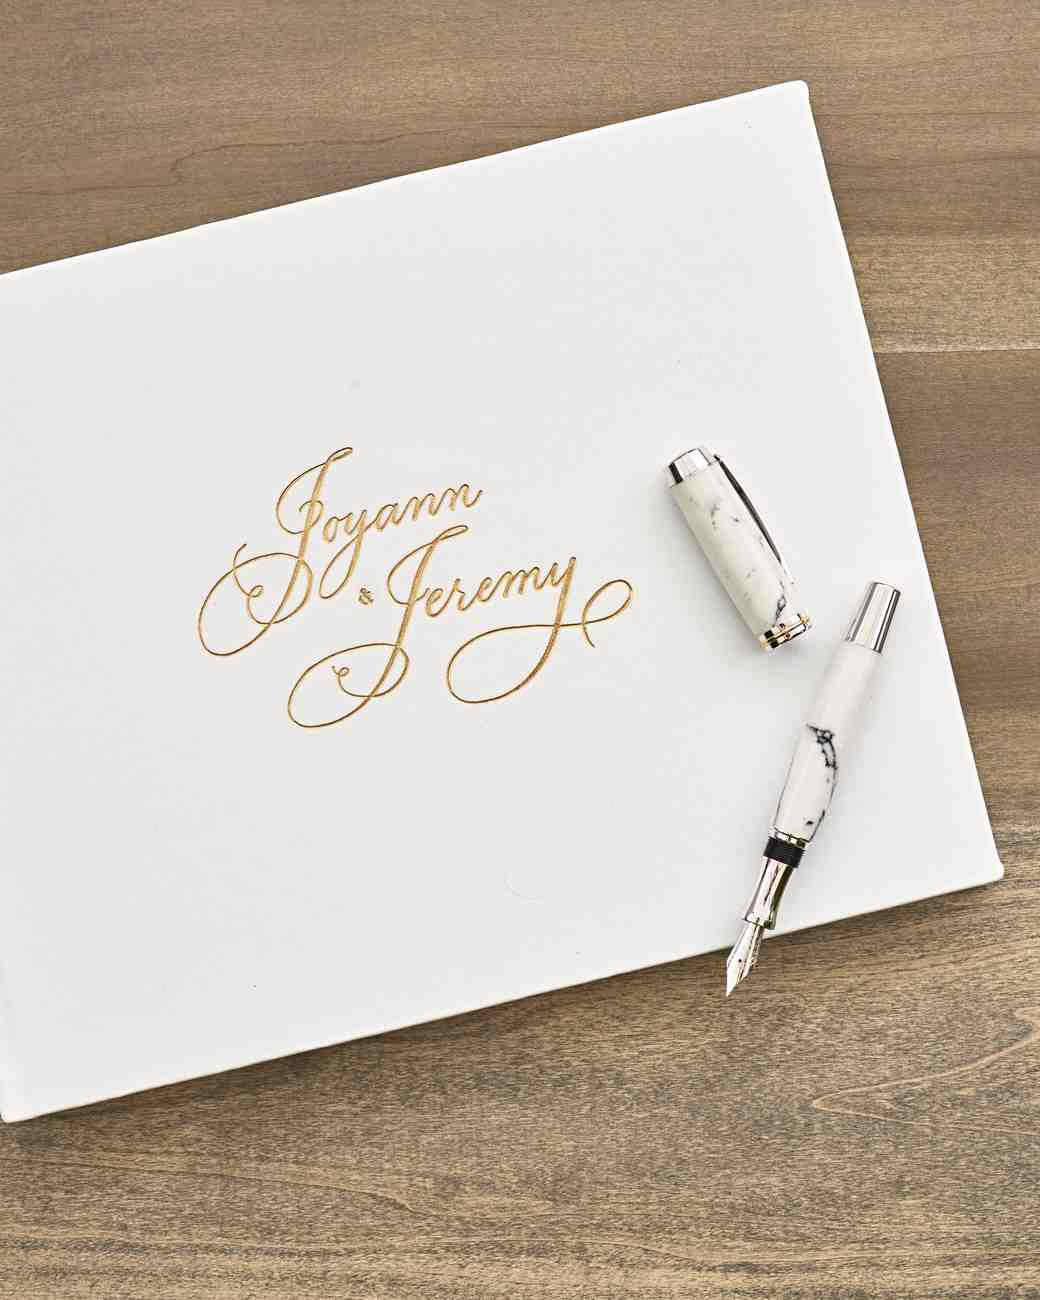 joyann jeremy wedding guest book